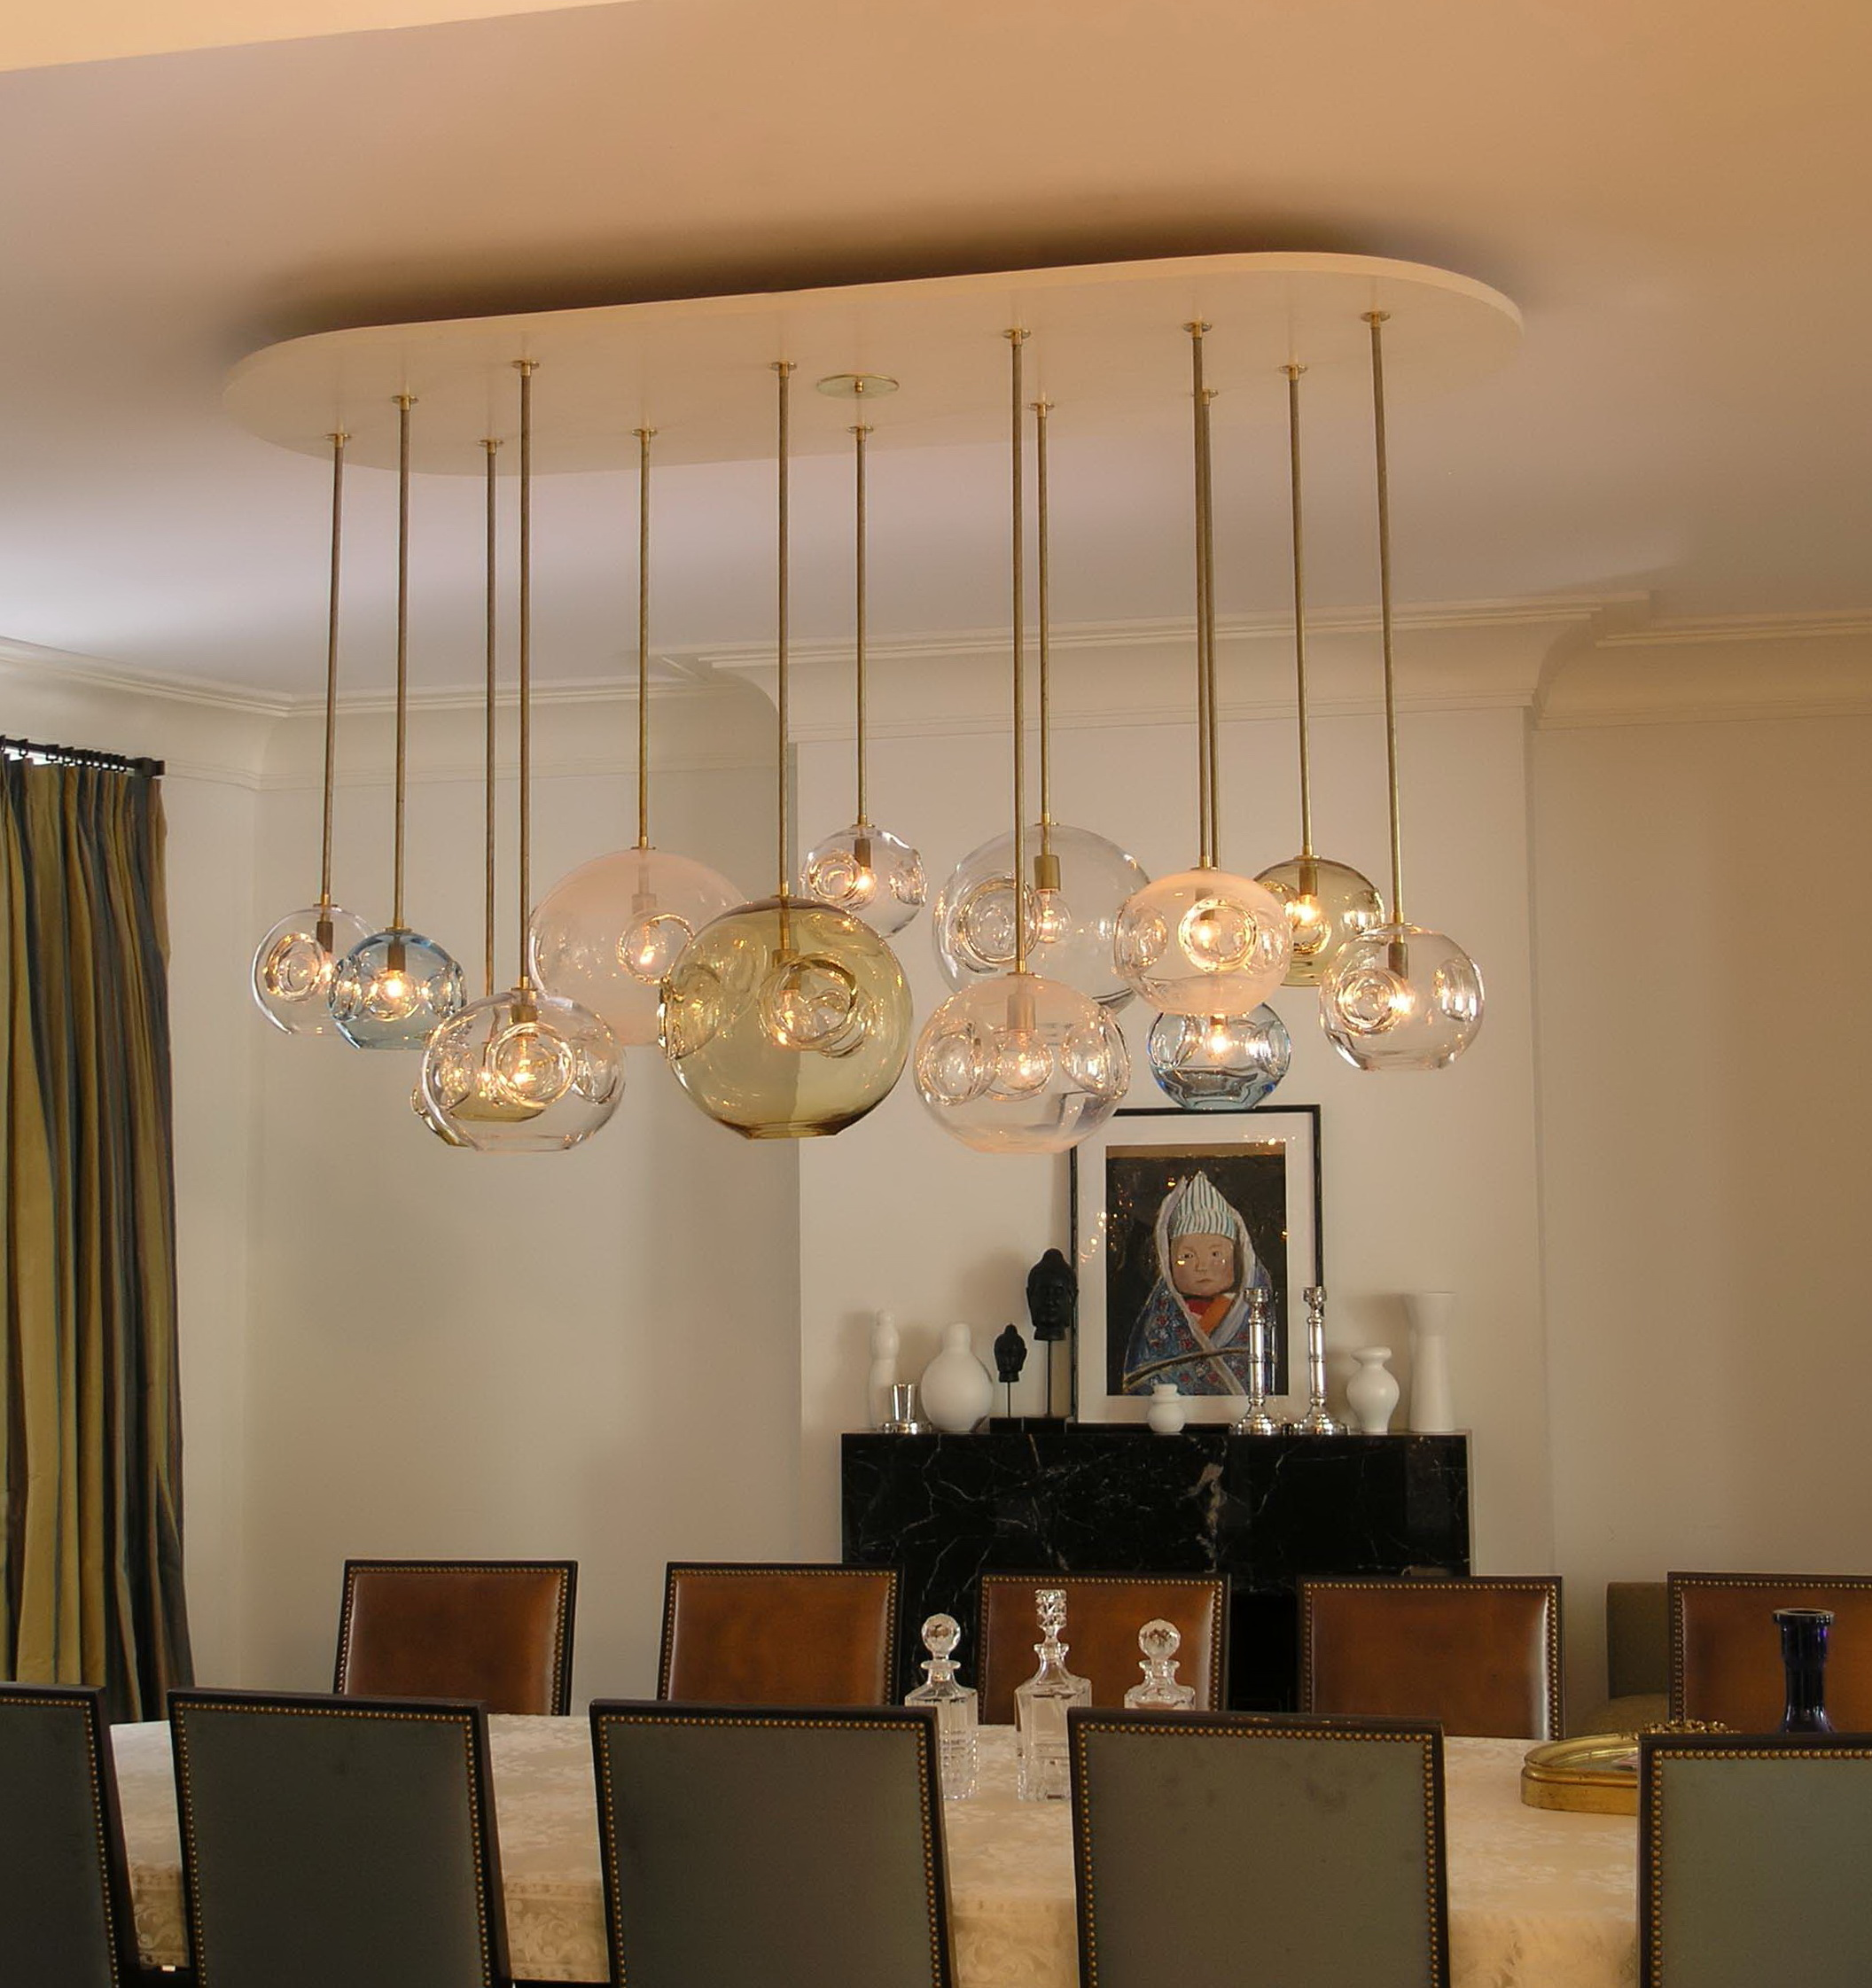 Modern contemporary dining room chandeliers home design ideas - Chandeliers for dining room contemporary ...